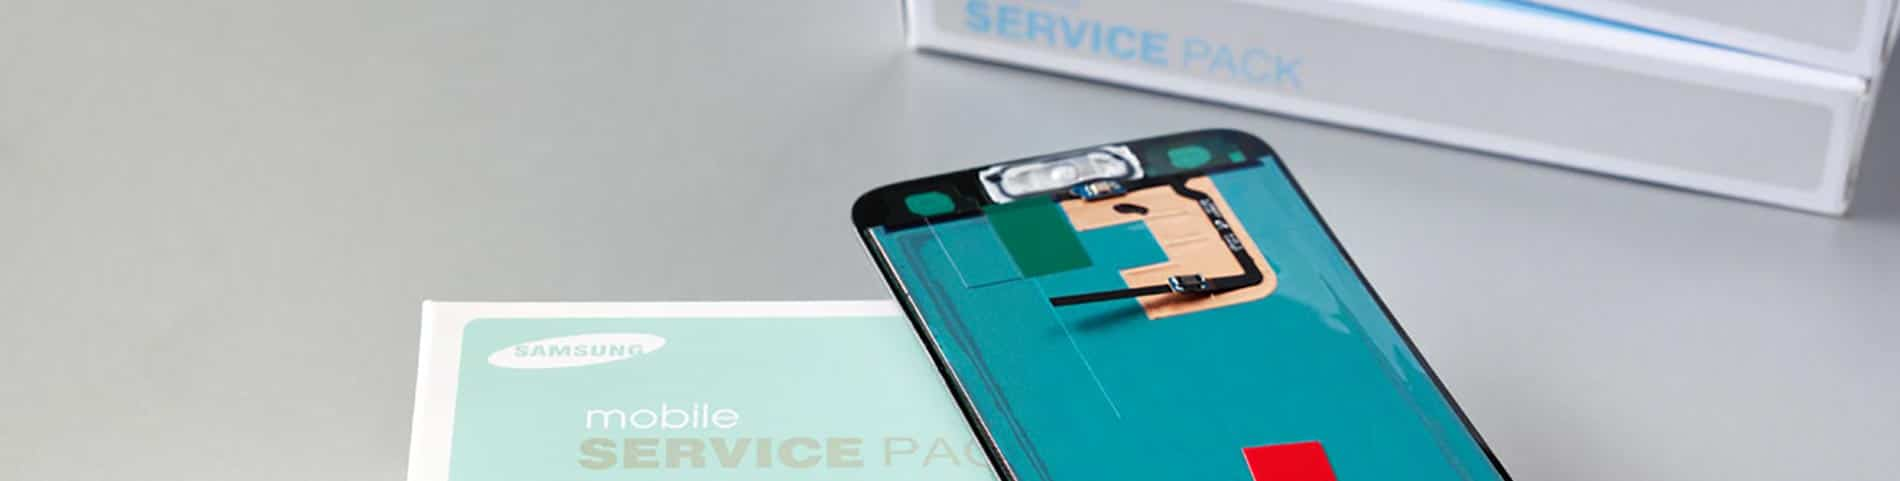 Samsung Galaxy S10 spare parts available soon